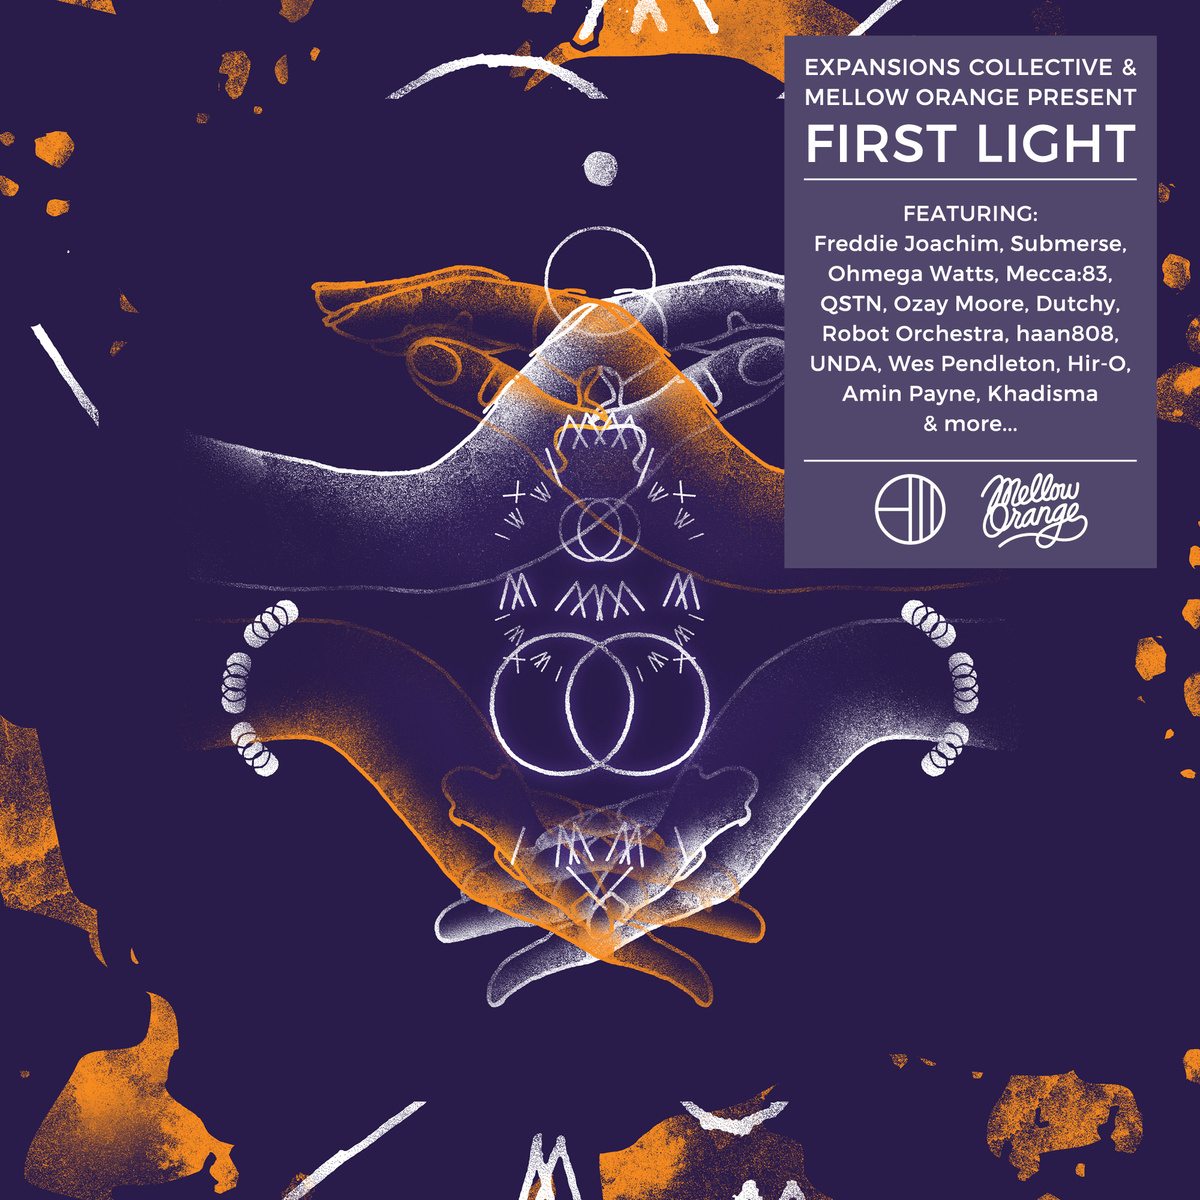 Expansions_collective_presentan_first_light